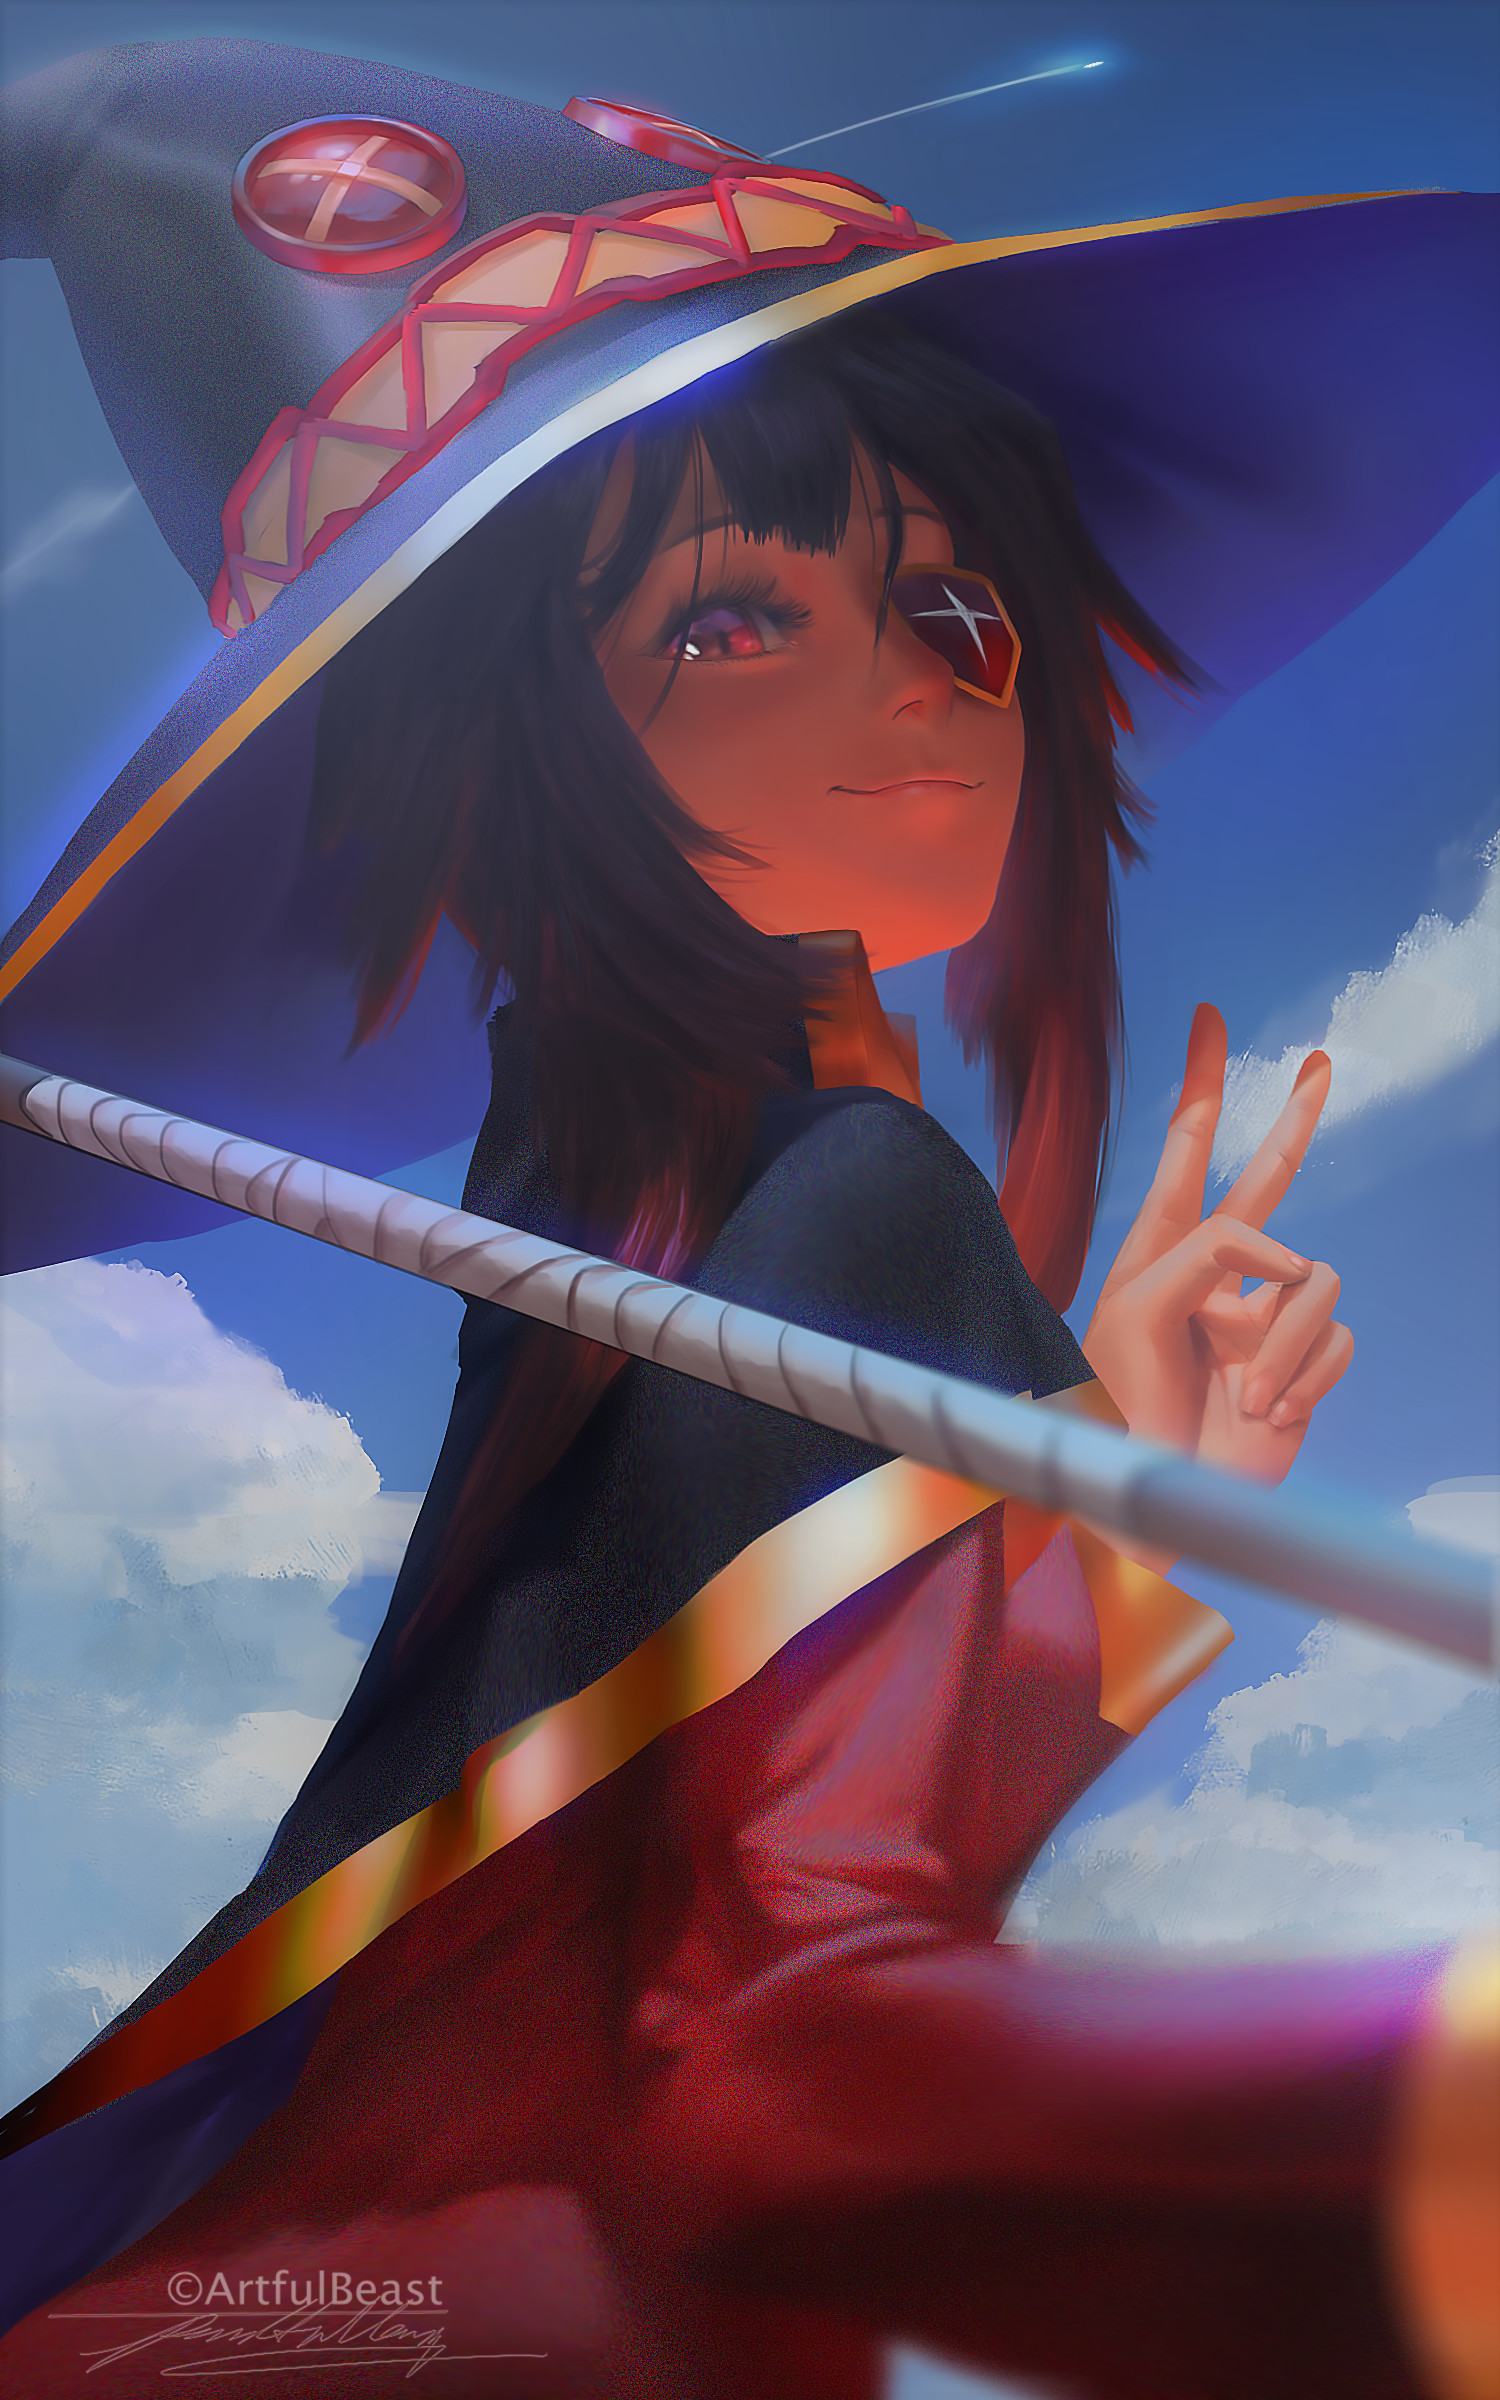 Anime 1500x2400 Kono Subarashii Sekai ni Shukufuku wo! anime girls brunette short hair witch hat eye patch fantasy weapon digital art Megumin fan art red eyes Paul Nong